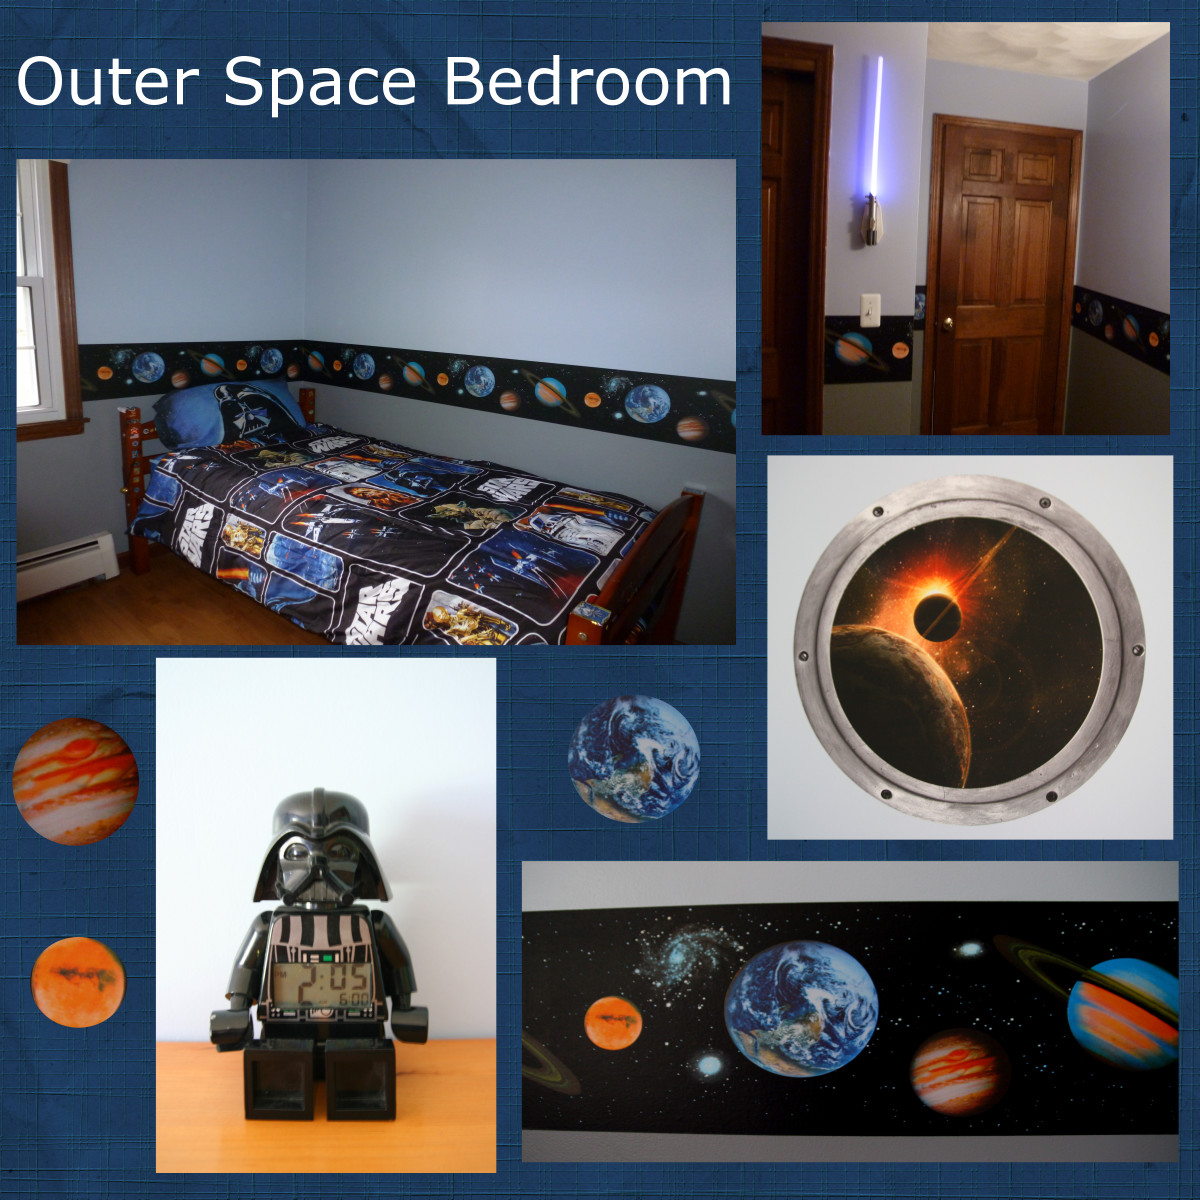 Outer space bedroom decorating ideas hubpages for Outer space decor ideas